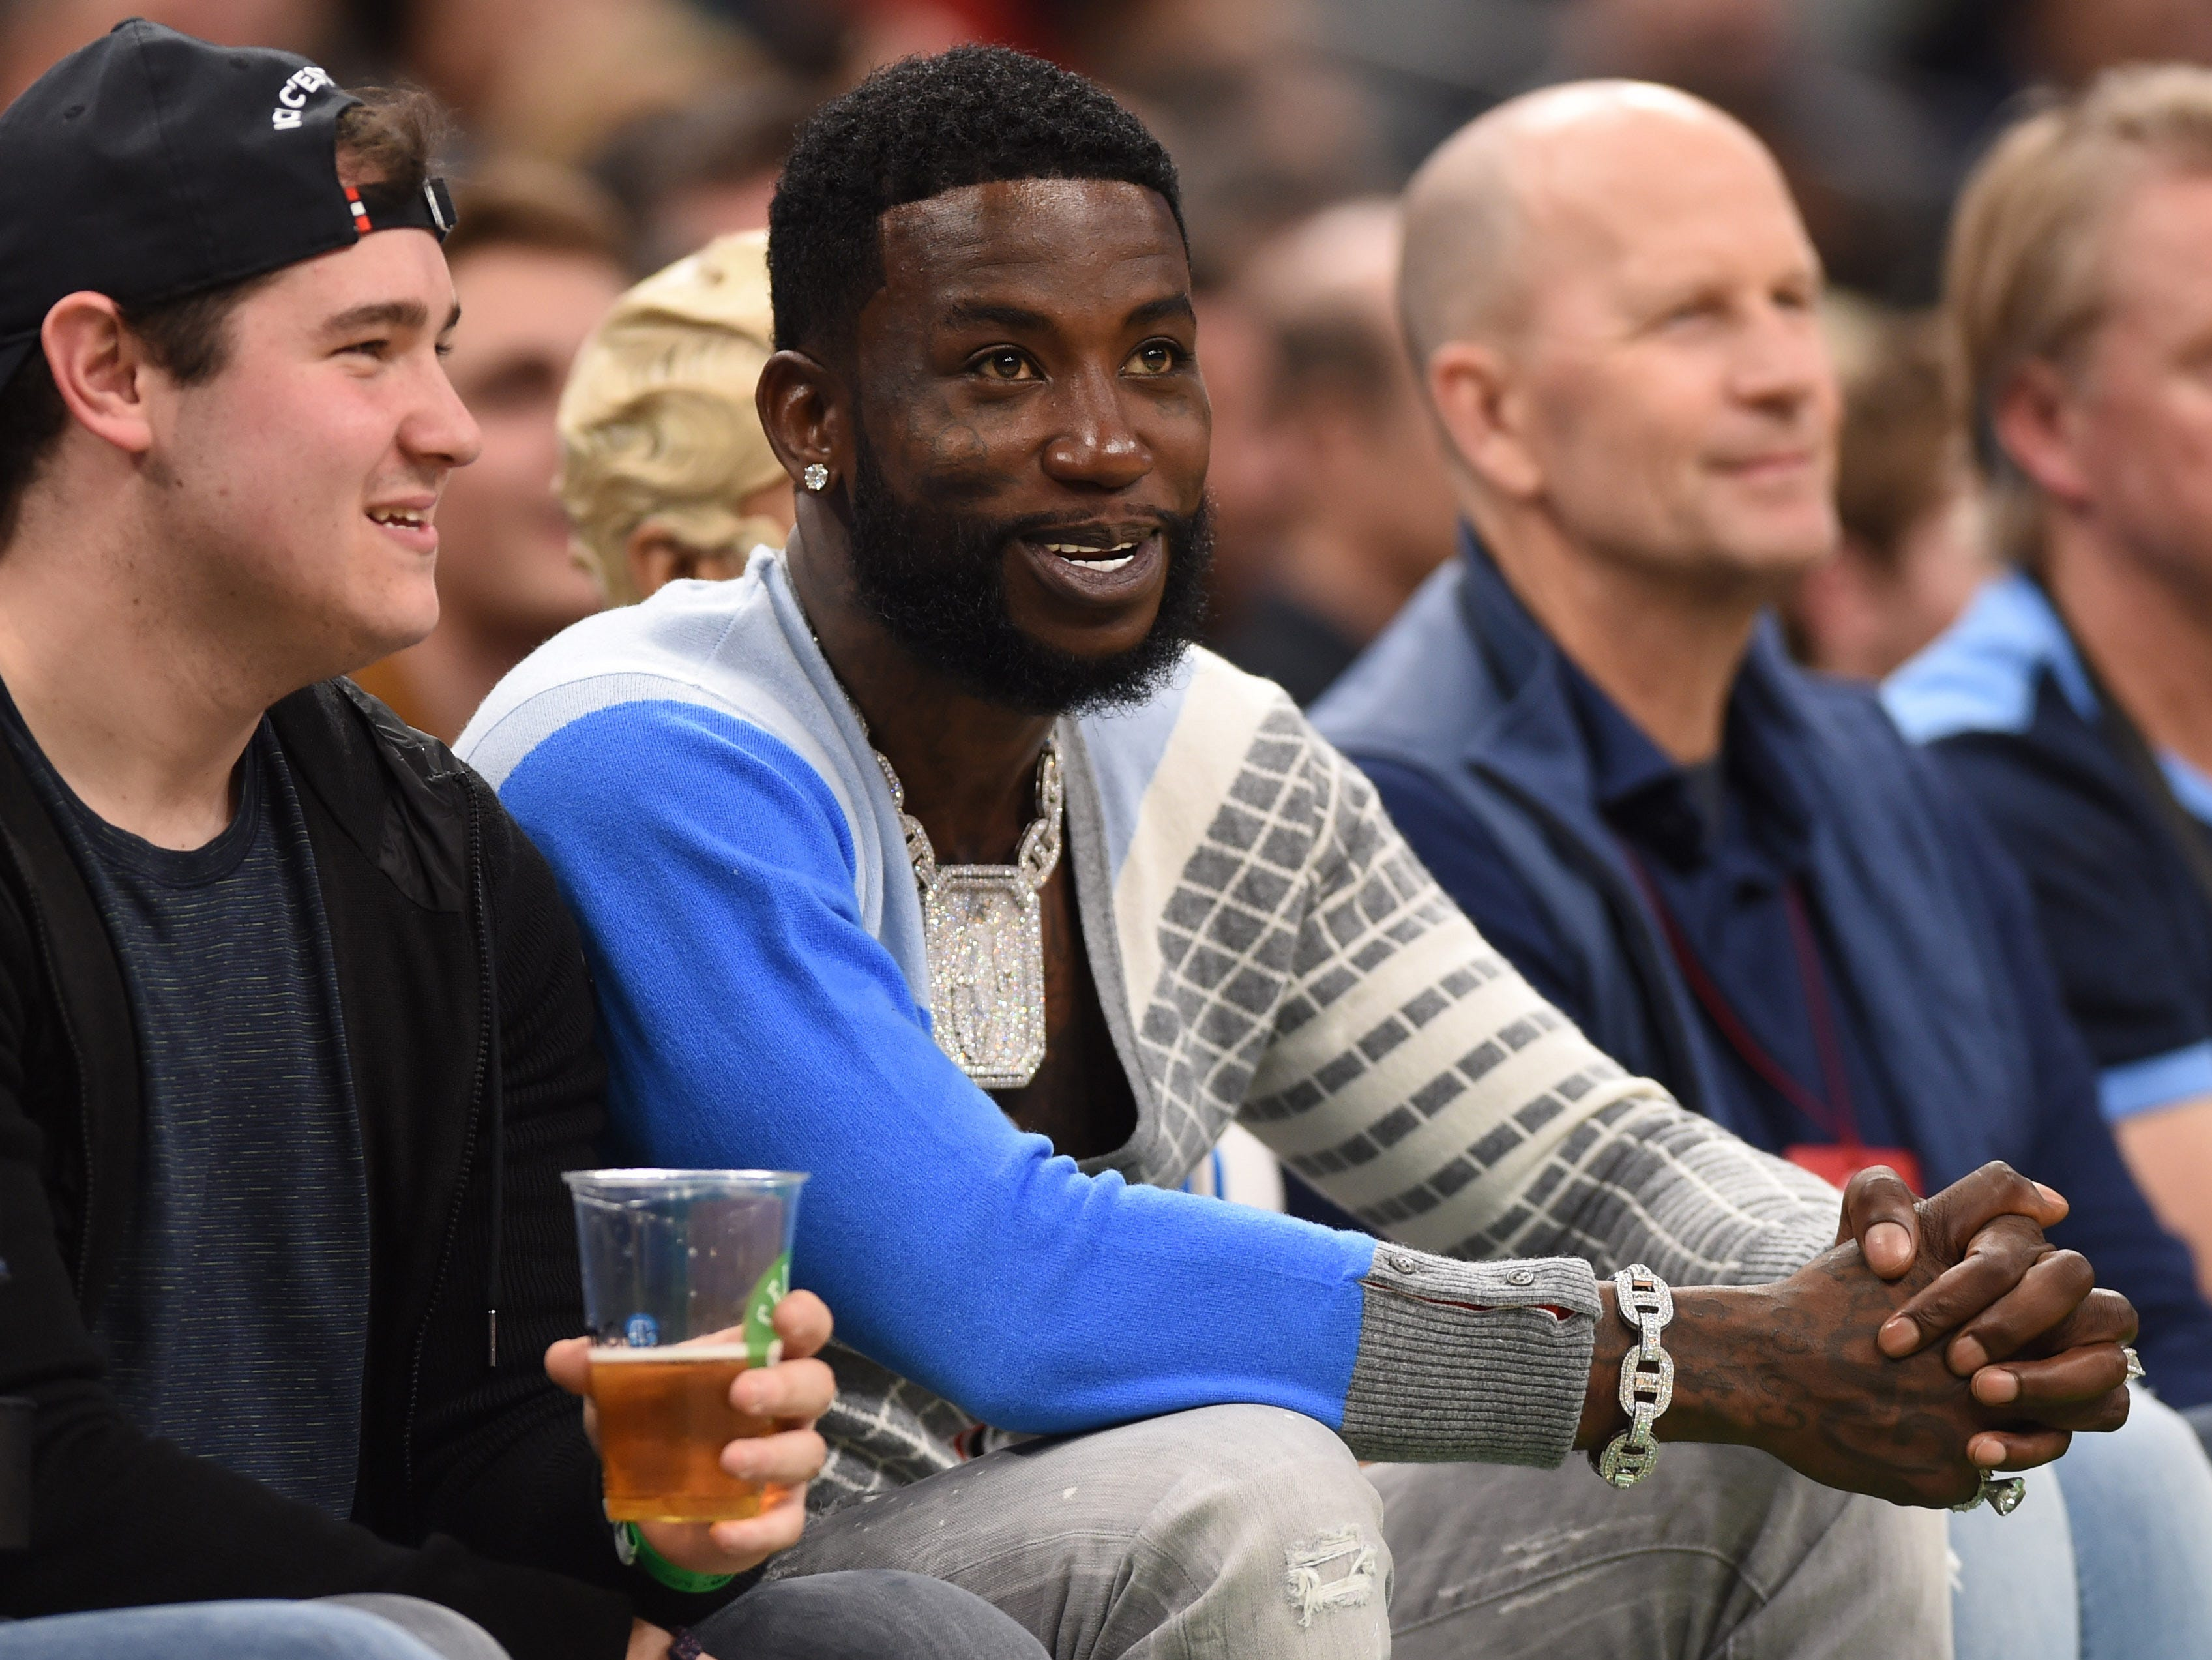 May 3: Rapper Gucci Mane watches during the second half in Game 3 between the Boston Celtics and Milwaukee Bucks.